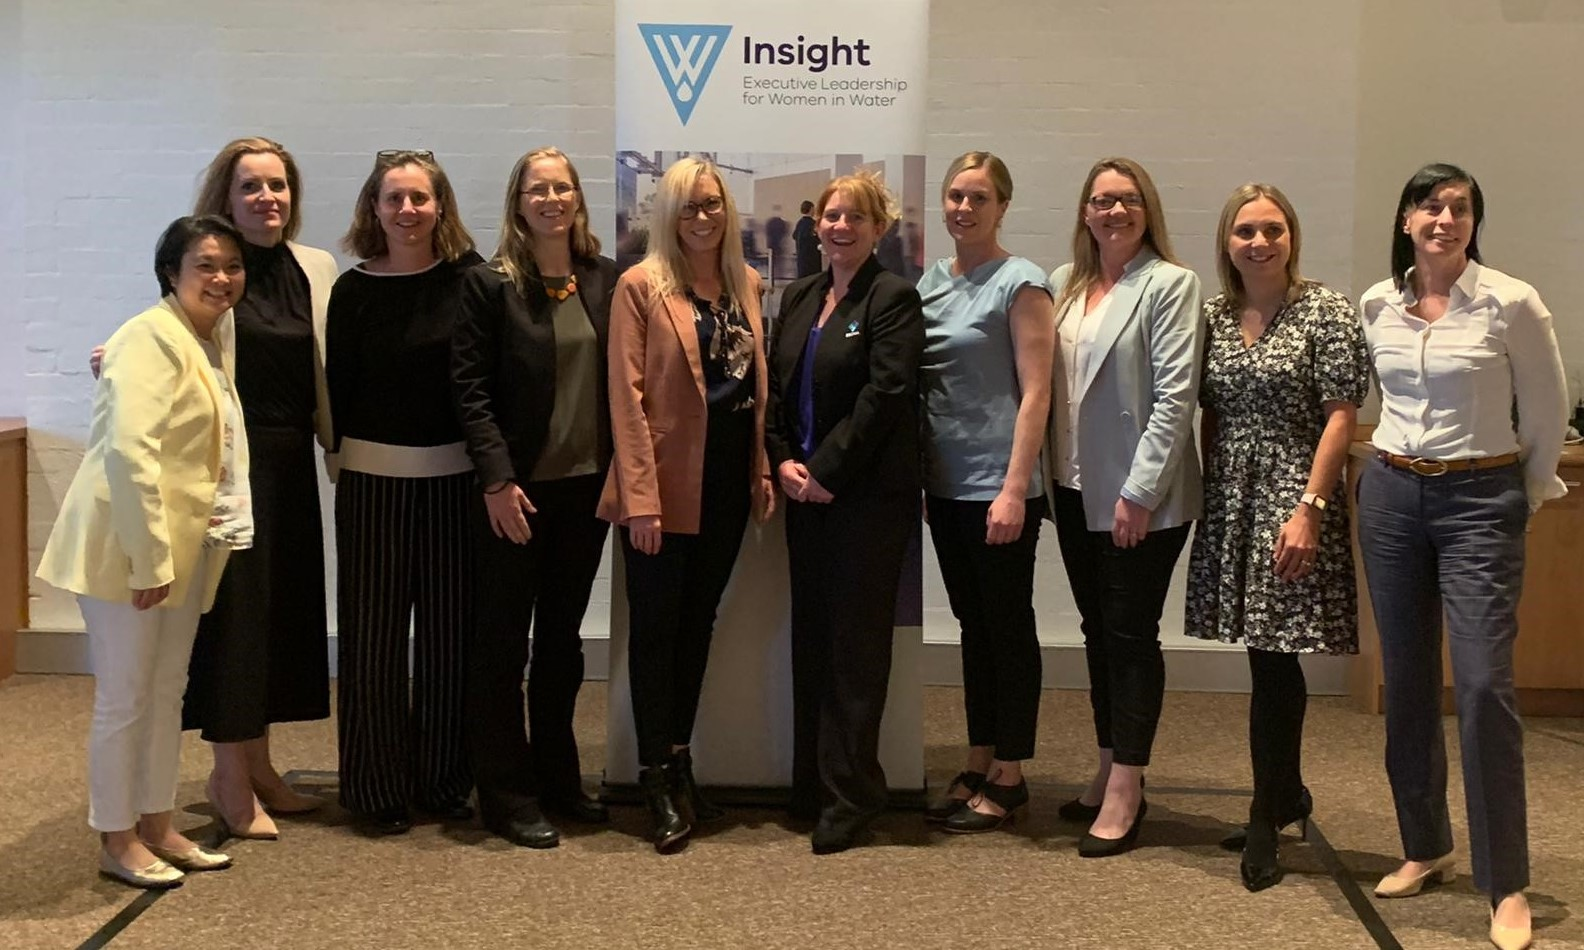 A group image of the 2020 Insight participants at their graduation.